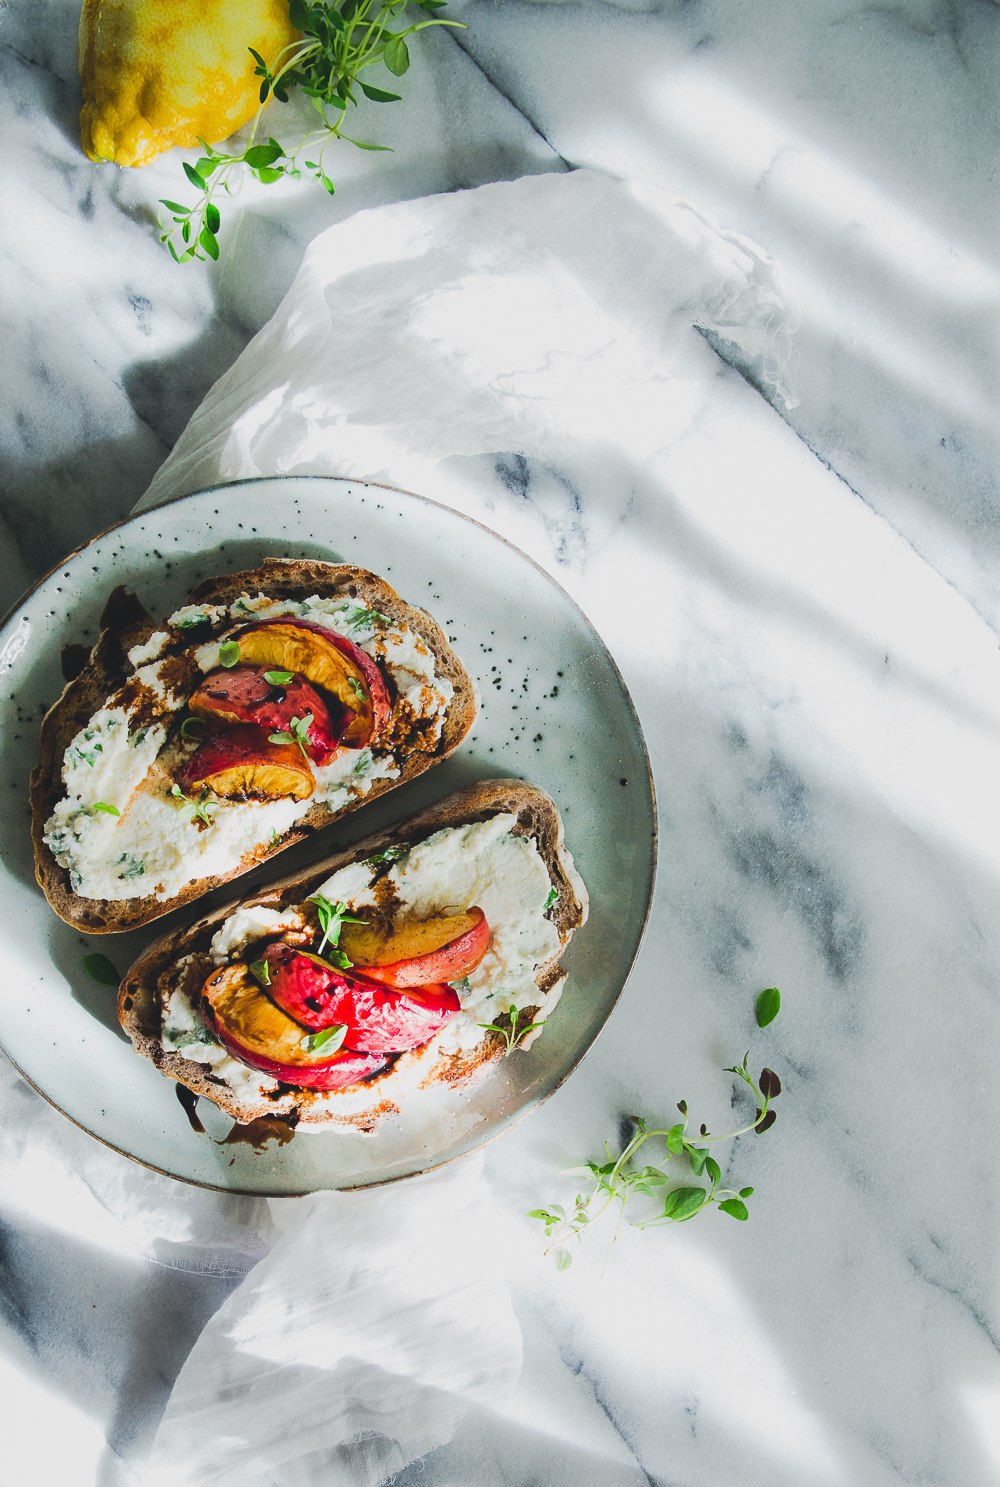 Herbed Ricotta & Parmesan Spread with Roasted Peaches & Balsamic Reduction on Sourdough Toast | Cashew Kitchen00